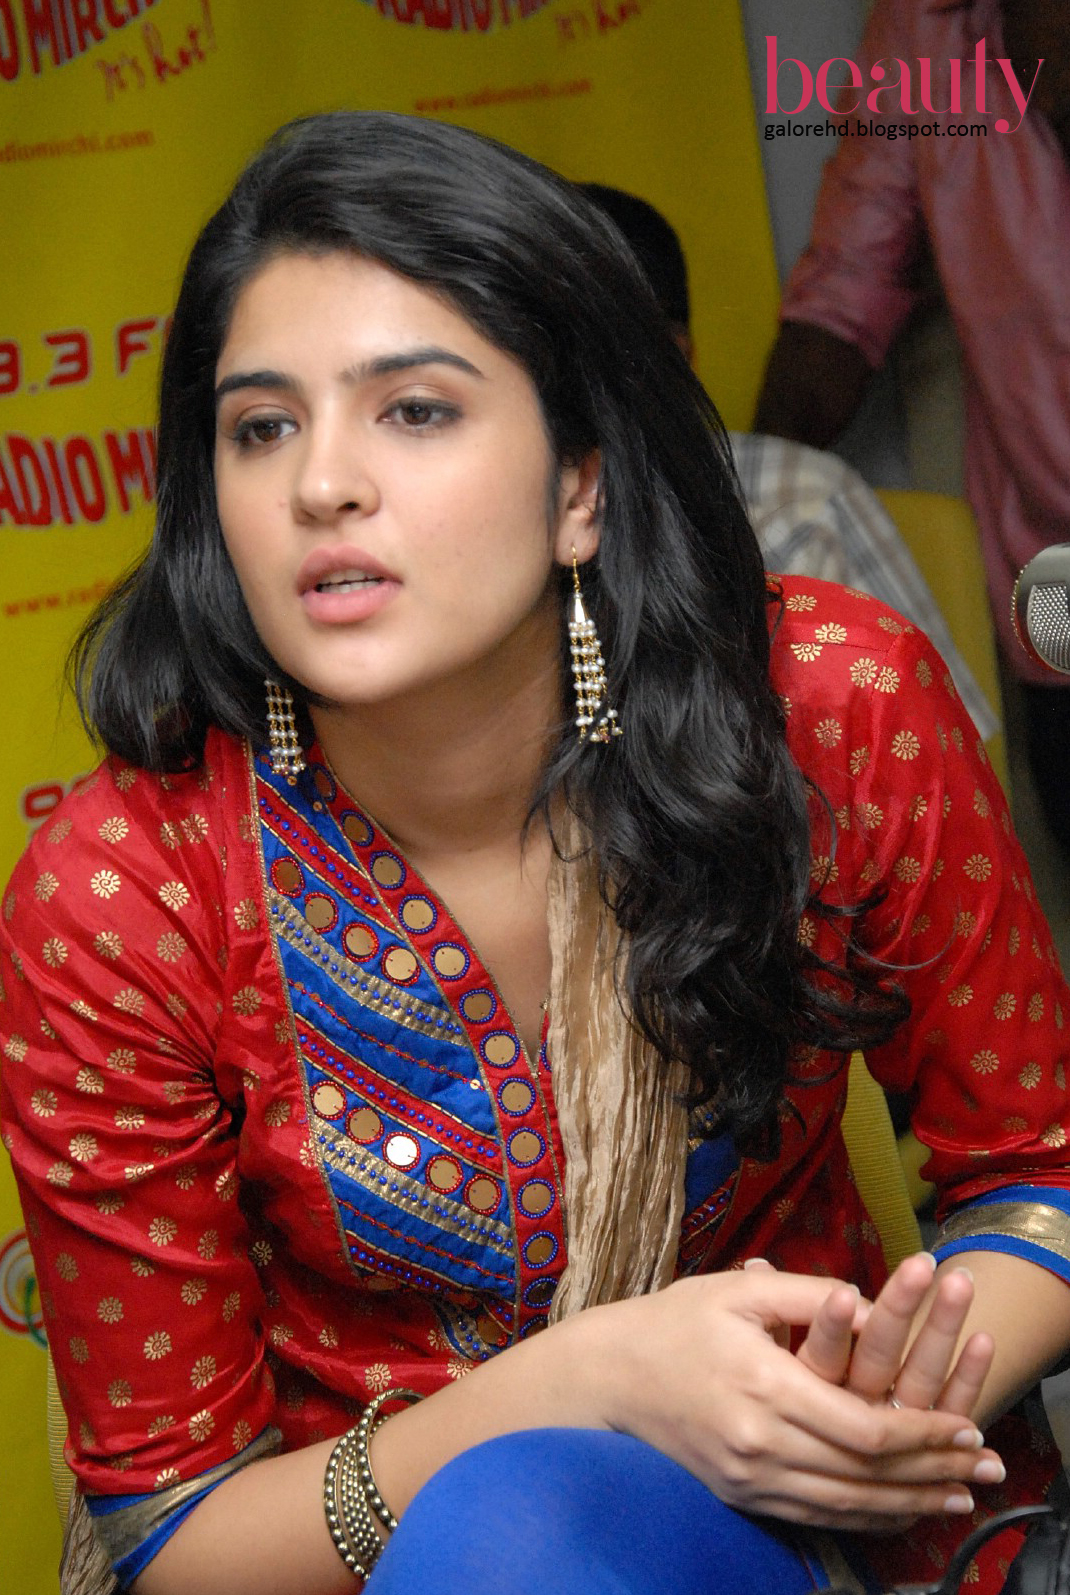 beauty galore hd : hot deeksha seth adorn in red rajasthani